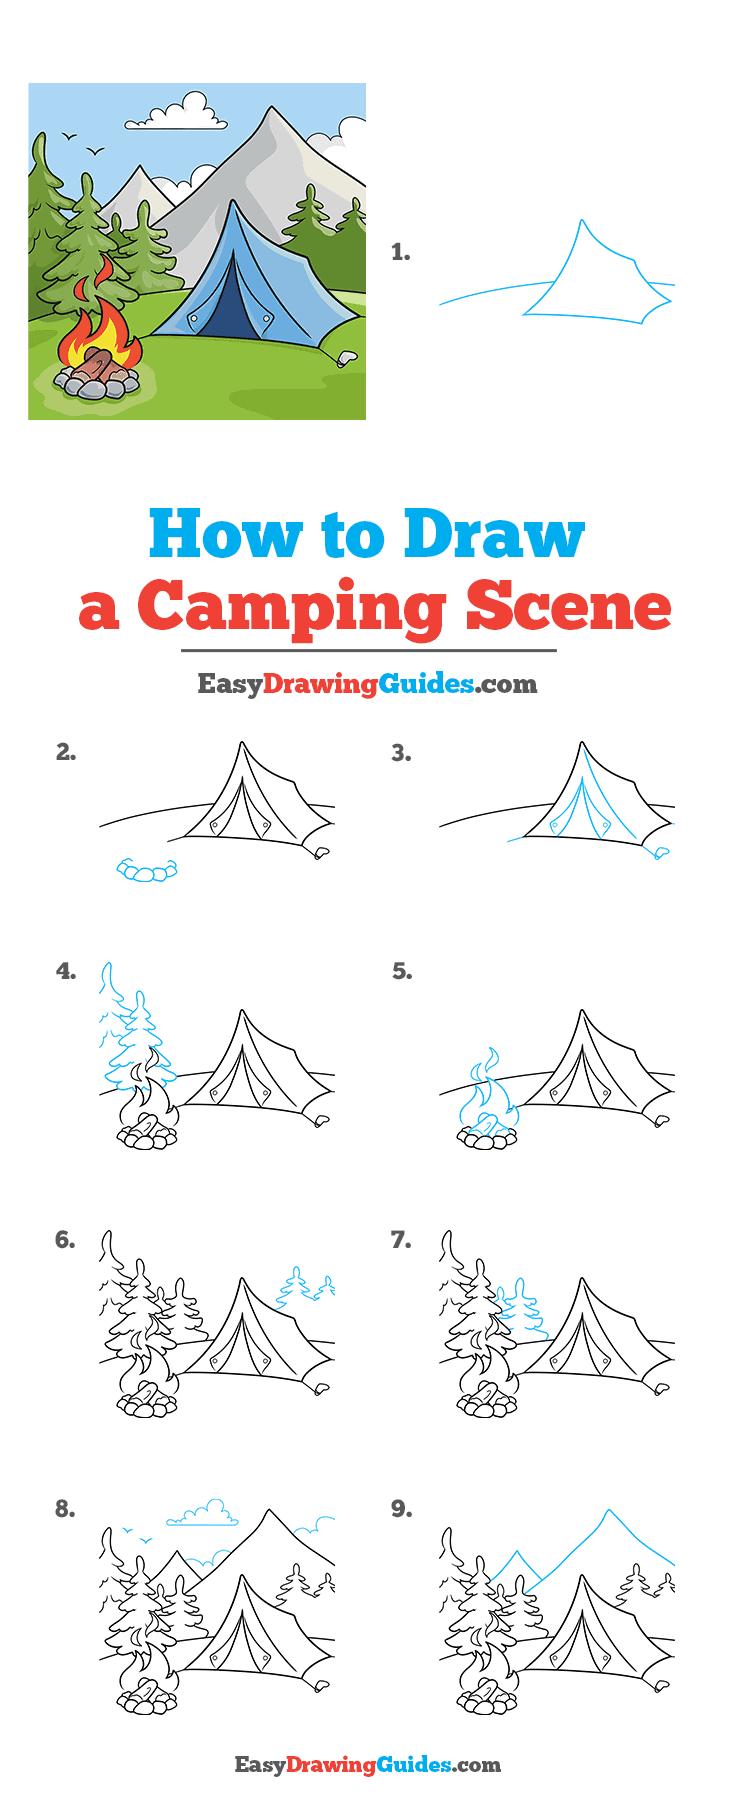 How to Draw a Camping Scene Step by Step Tutorial Image